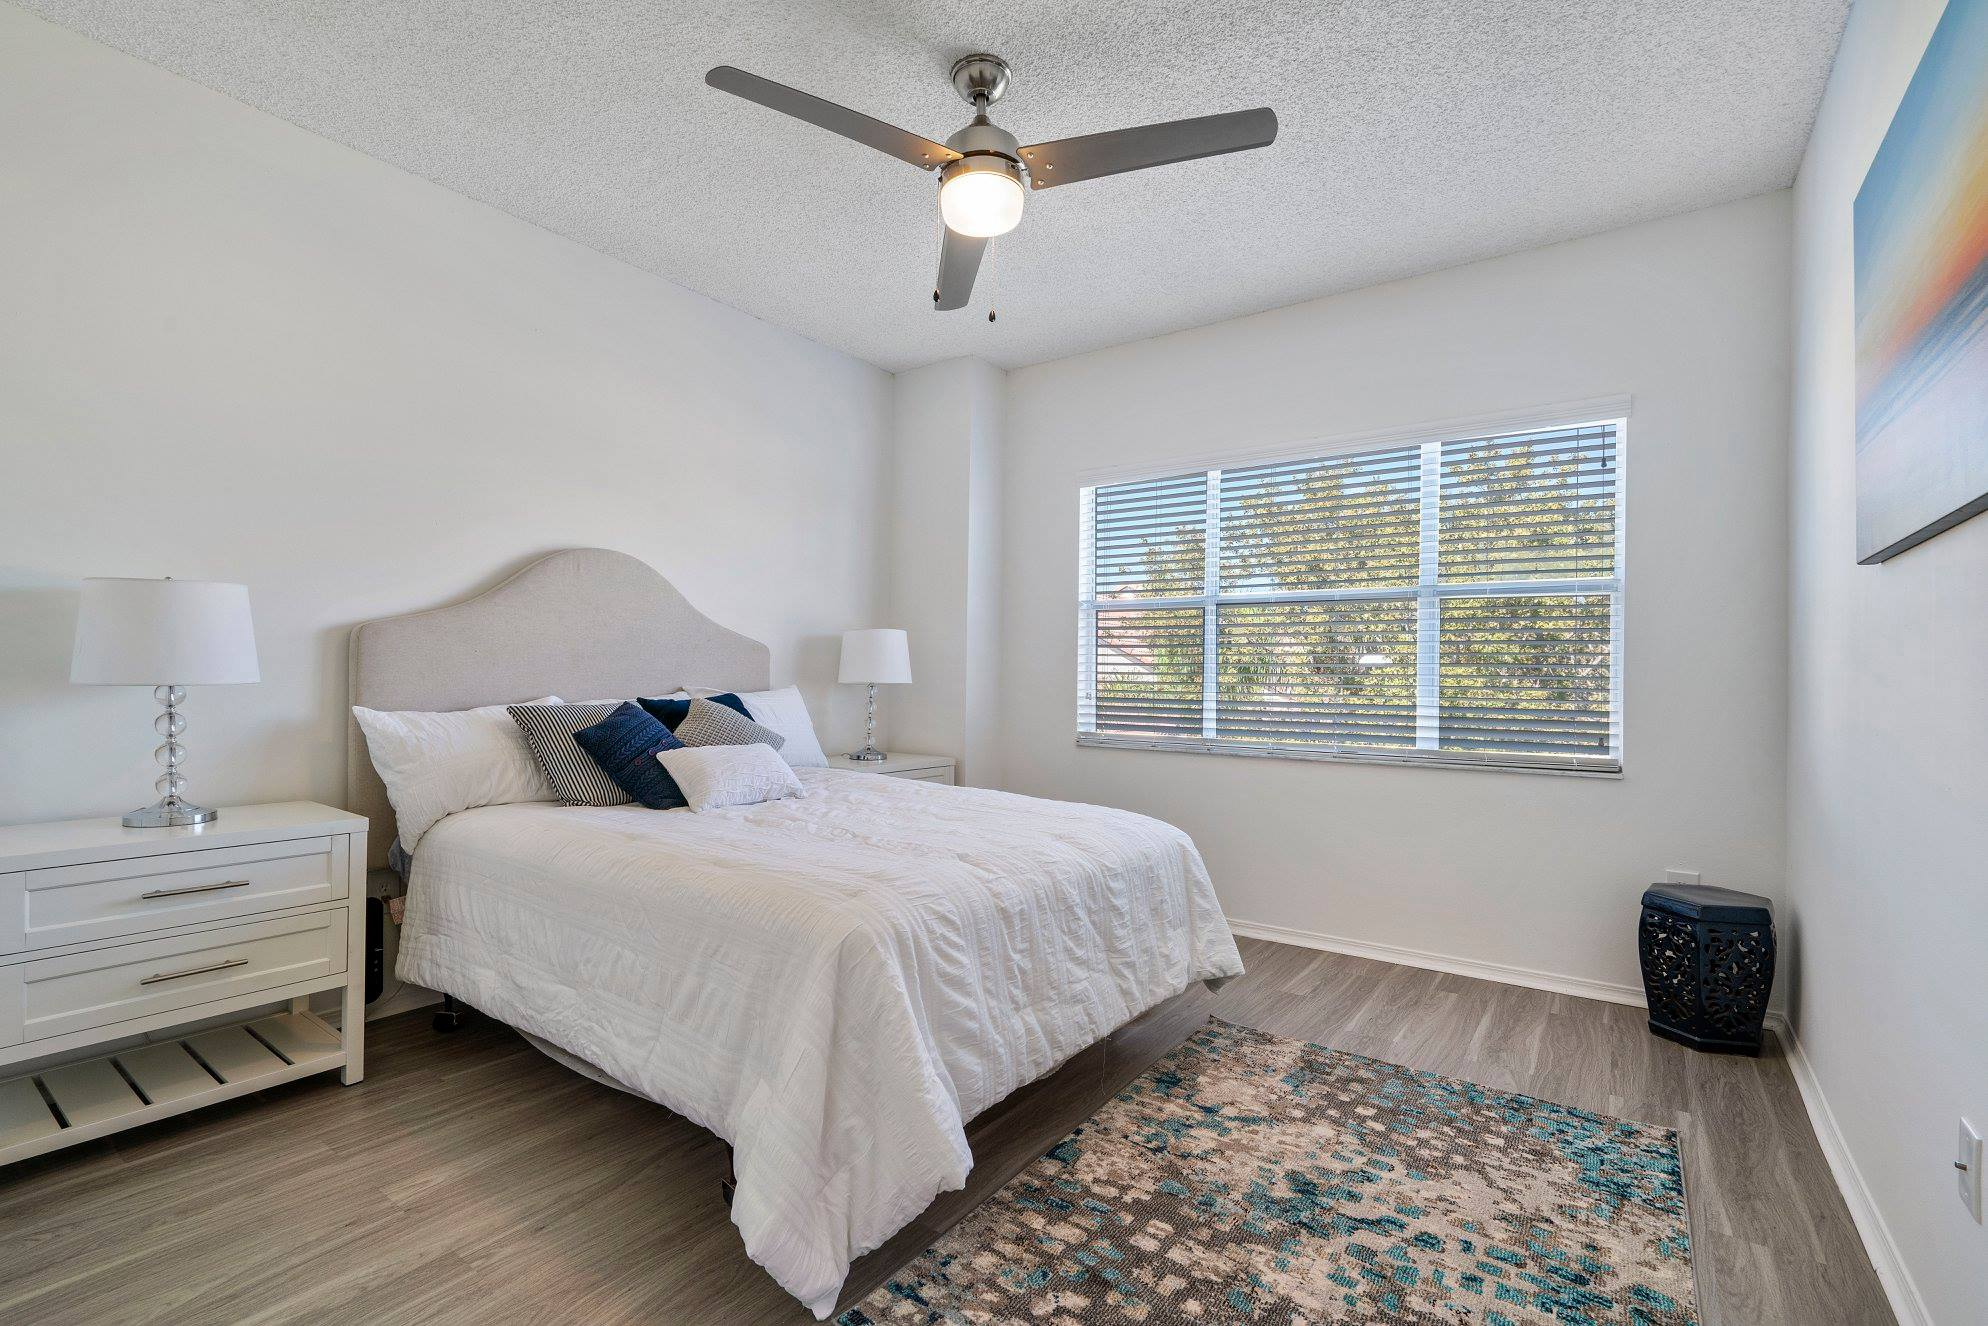 2 and 3-Bedroom Apartments for Rent at Windsor Castle Apartments in Coral Springs, Florida